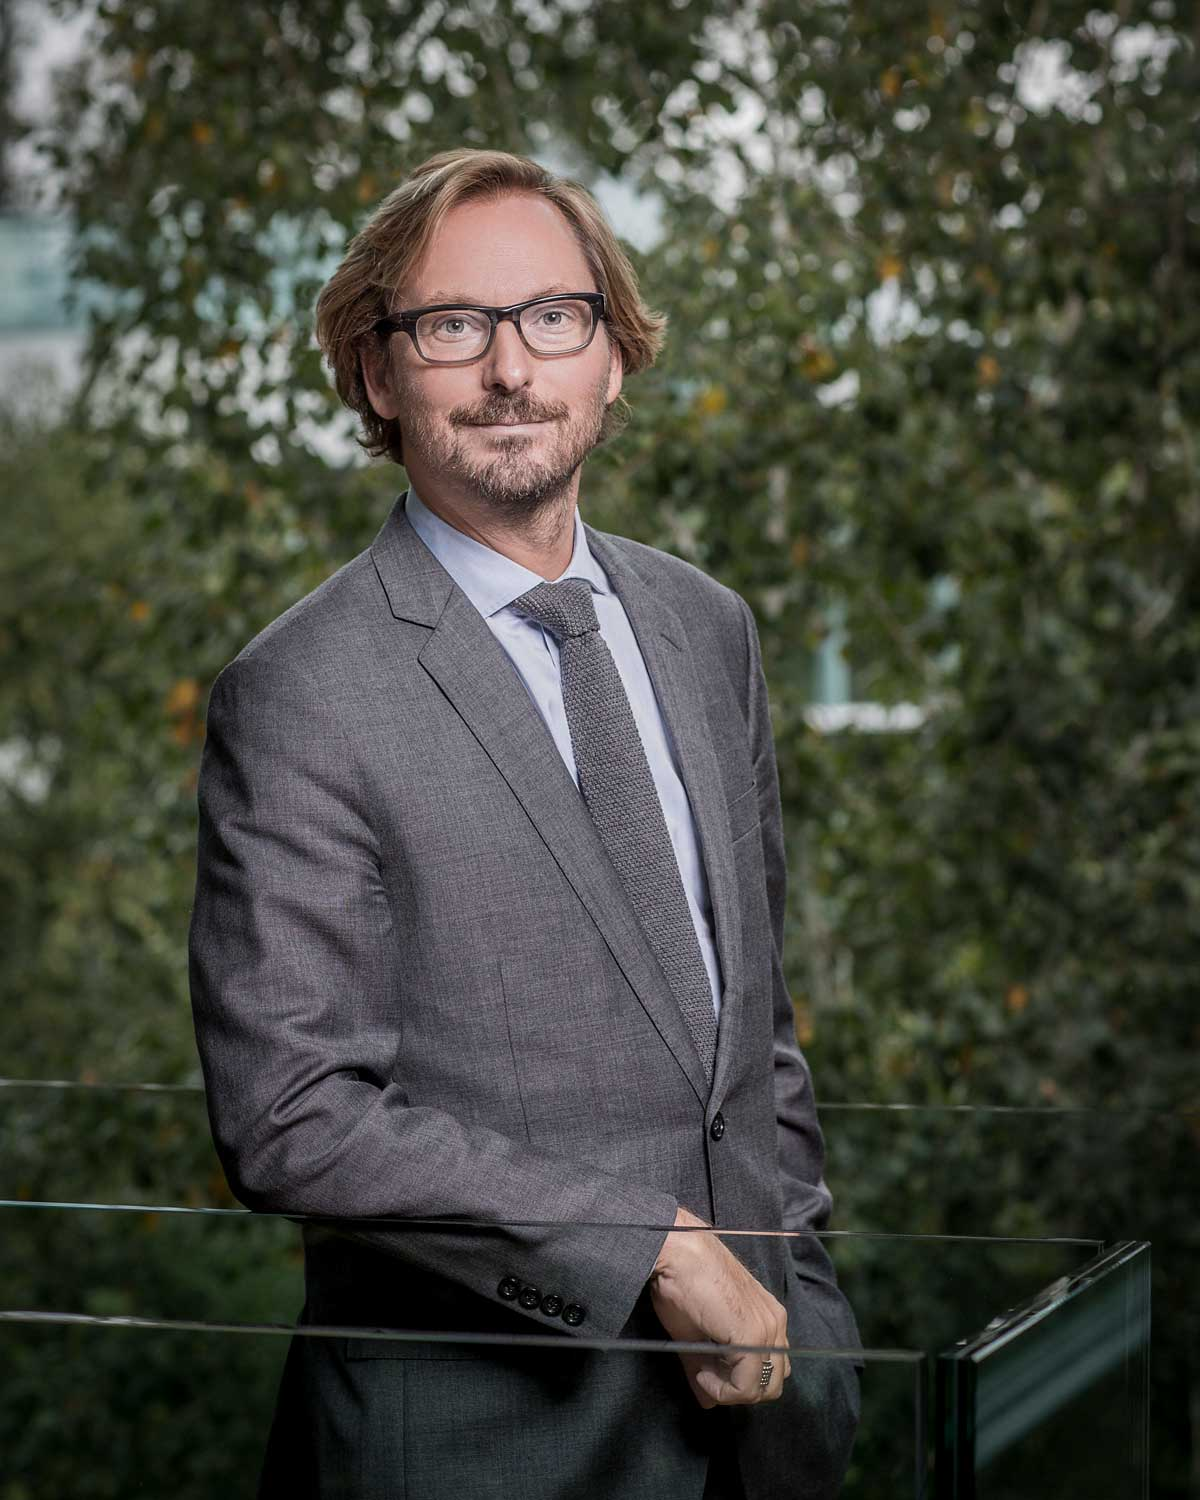 Nicolas Bos, CEO and president of Van Cleef & Arpels